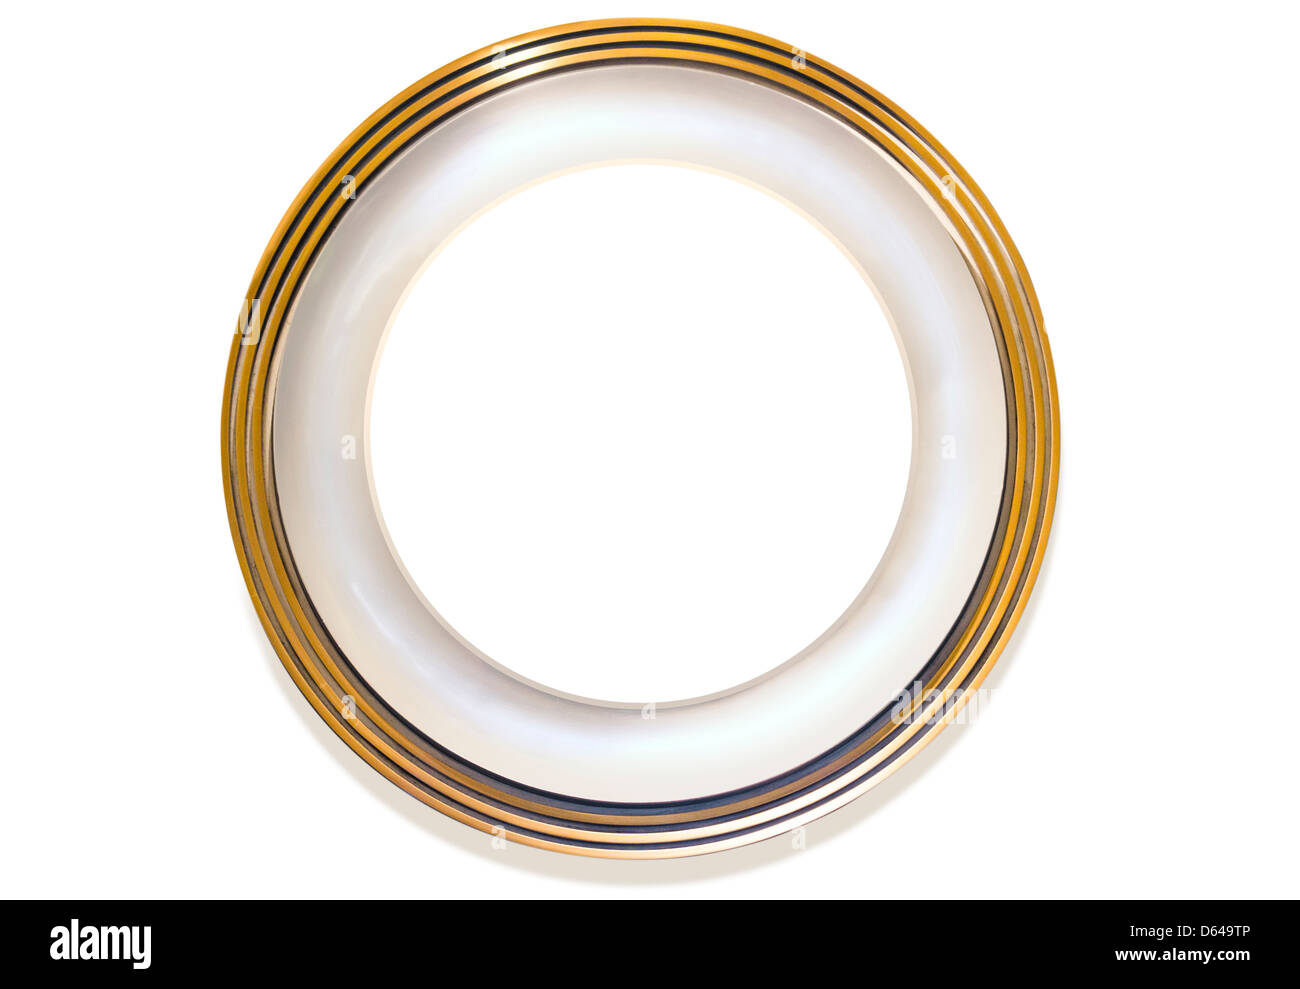 Plate with white inner circle for own content on white background - Stock Image